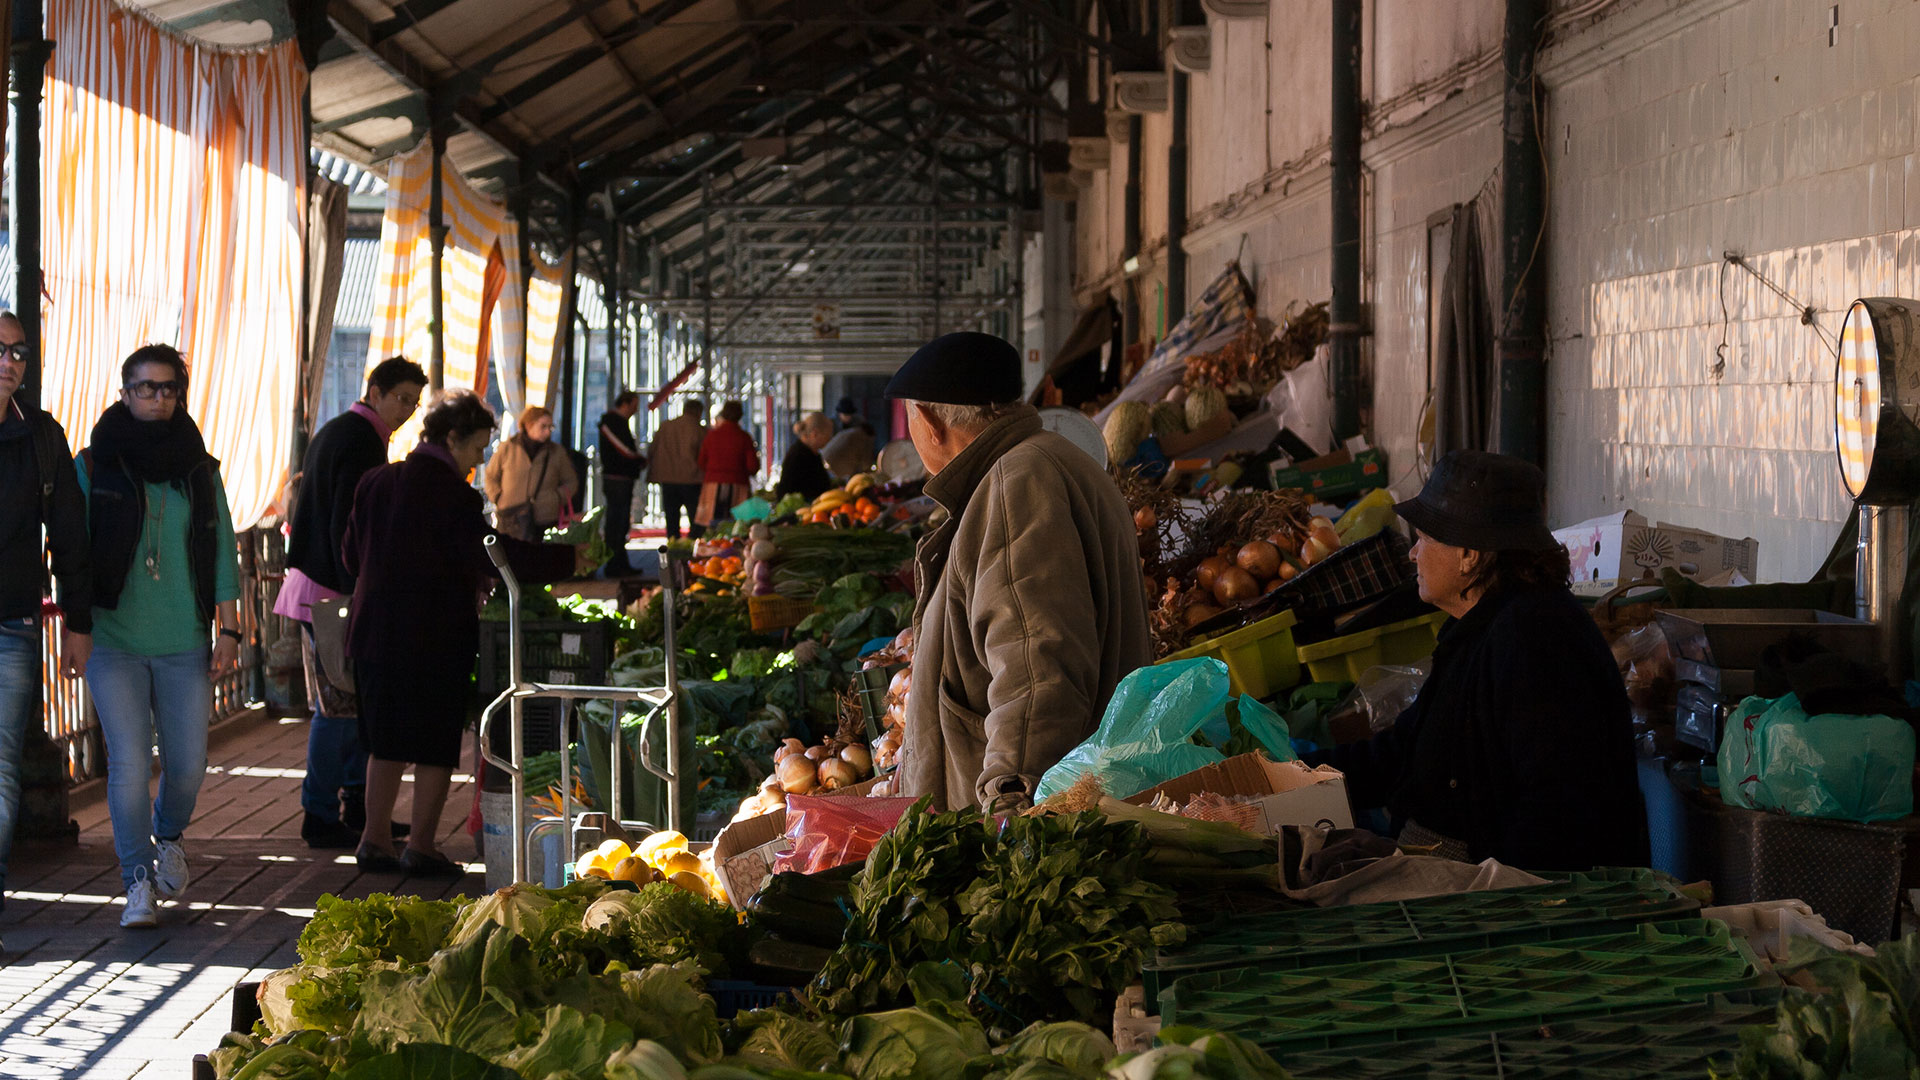 Vegetables and fruit stand at Bolhao Market in Porto